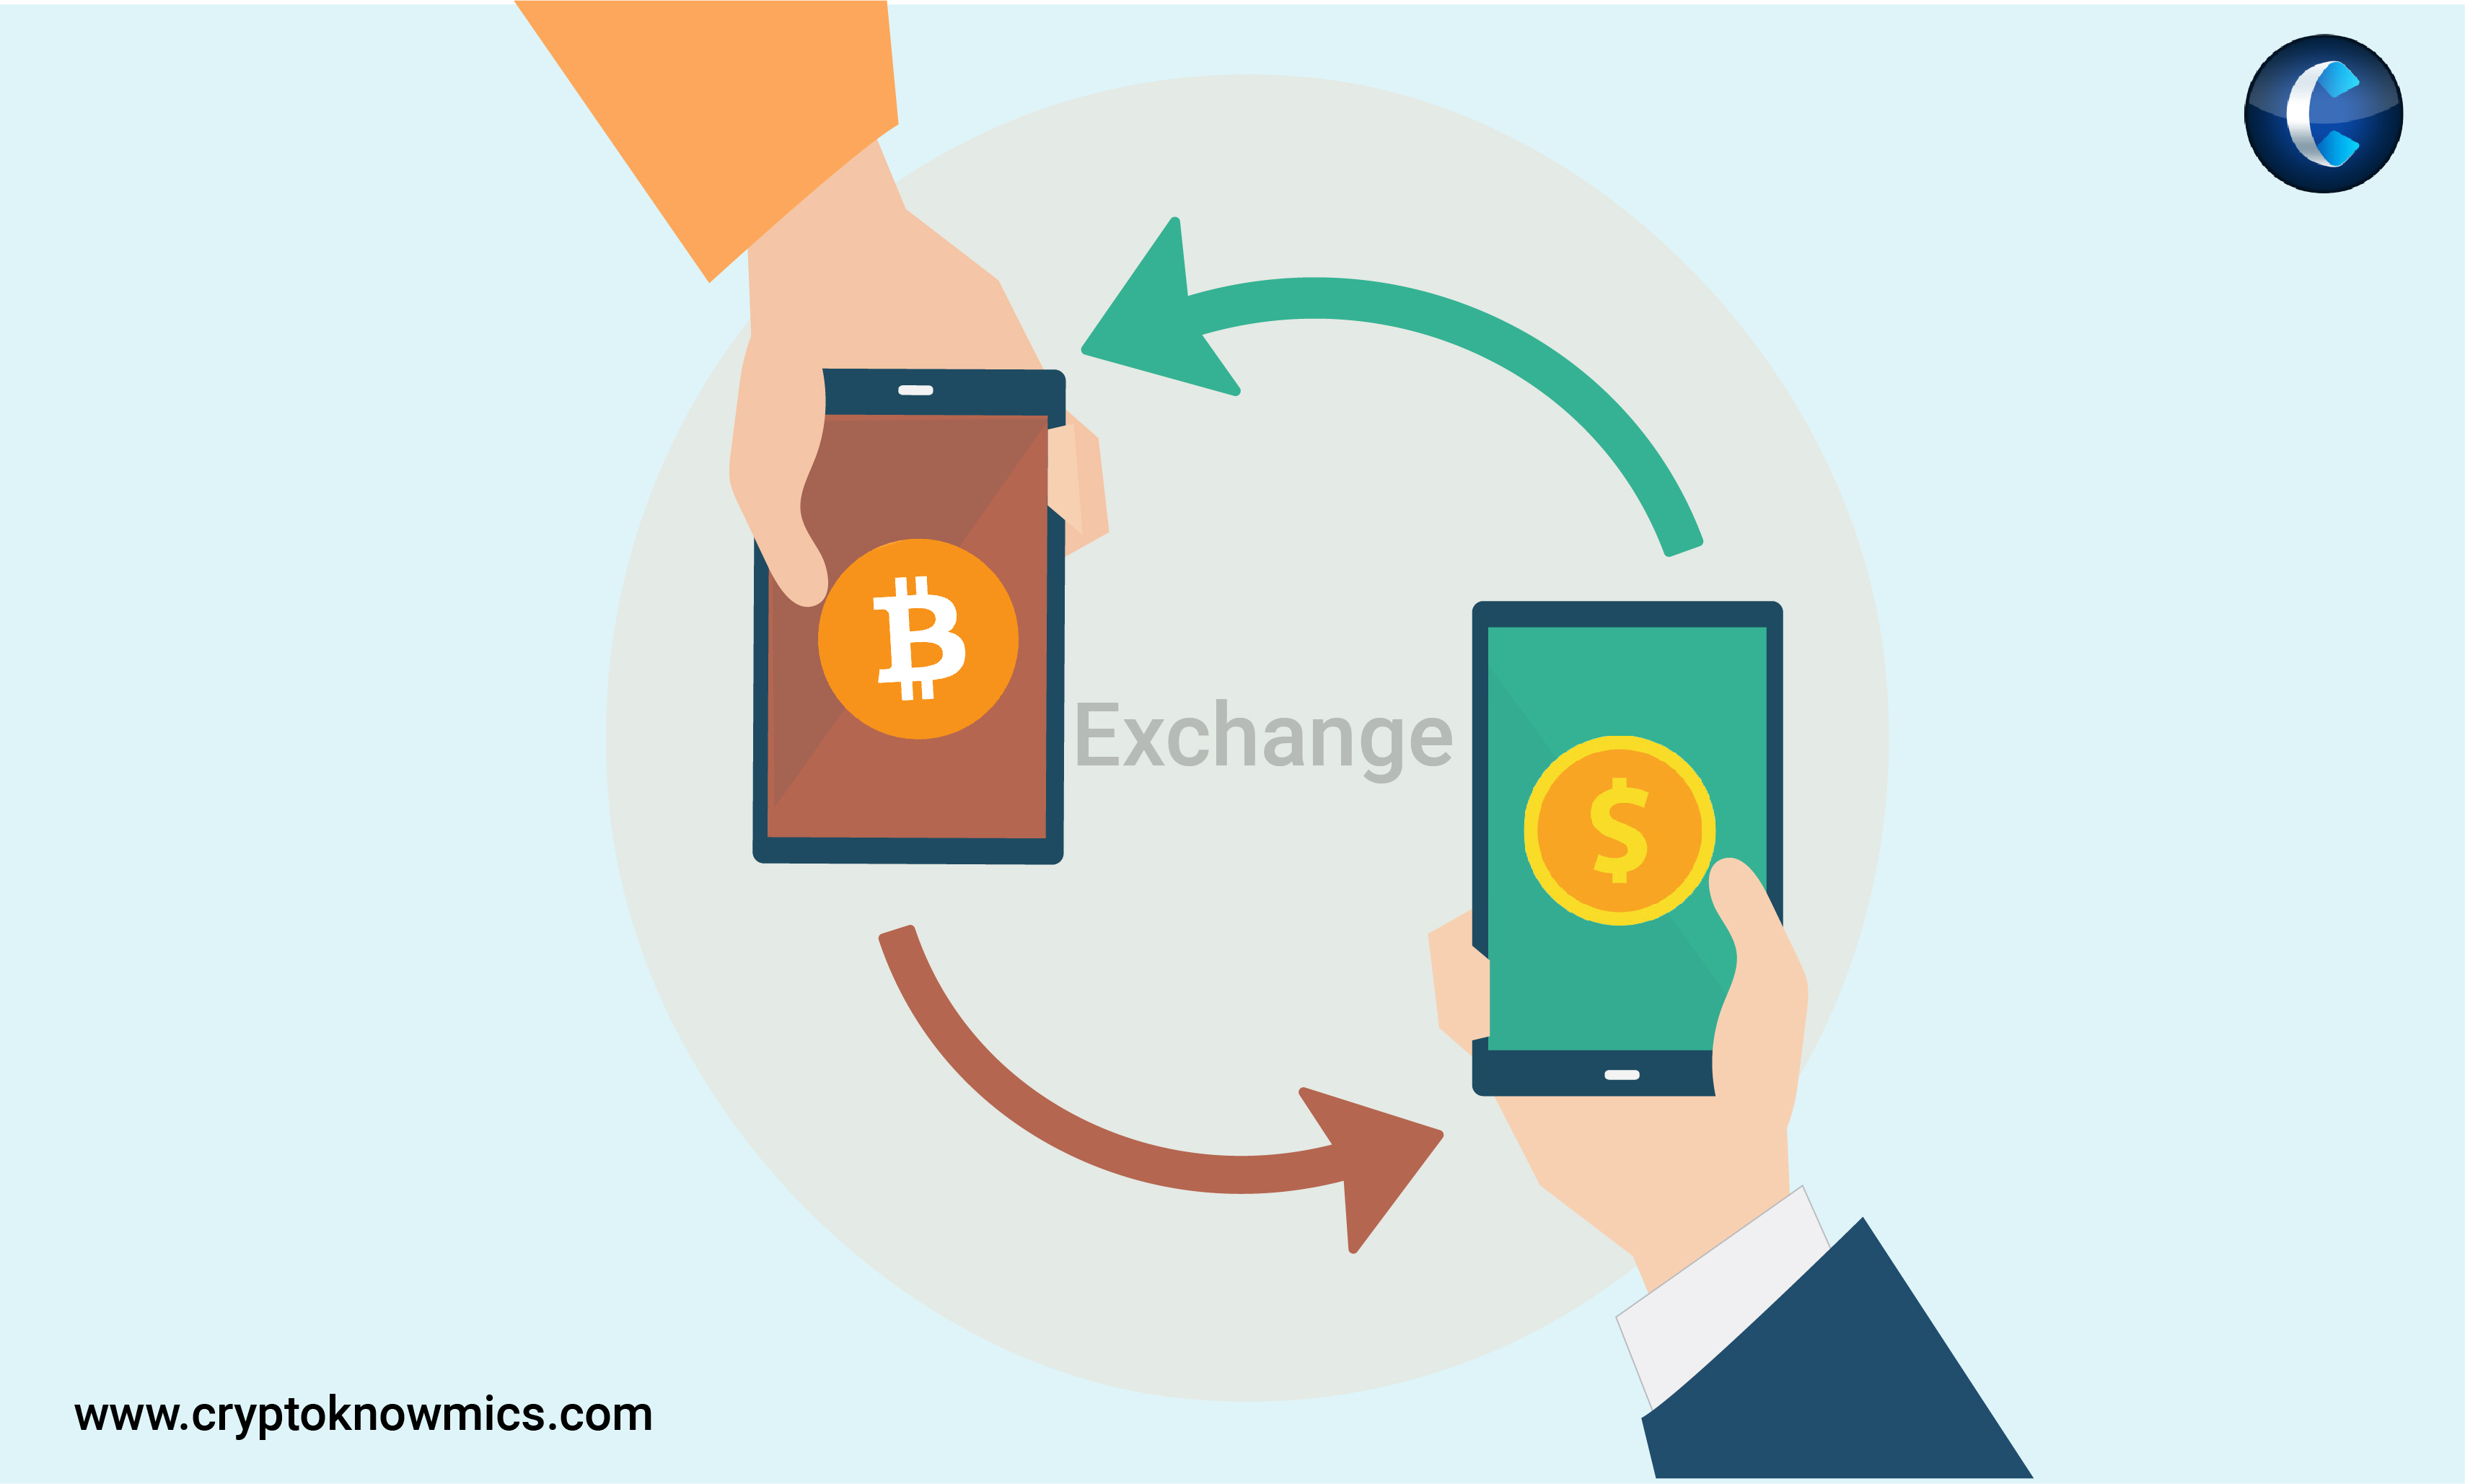 7 Factors to Consider While Selecting a Bitcoin Exchange